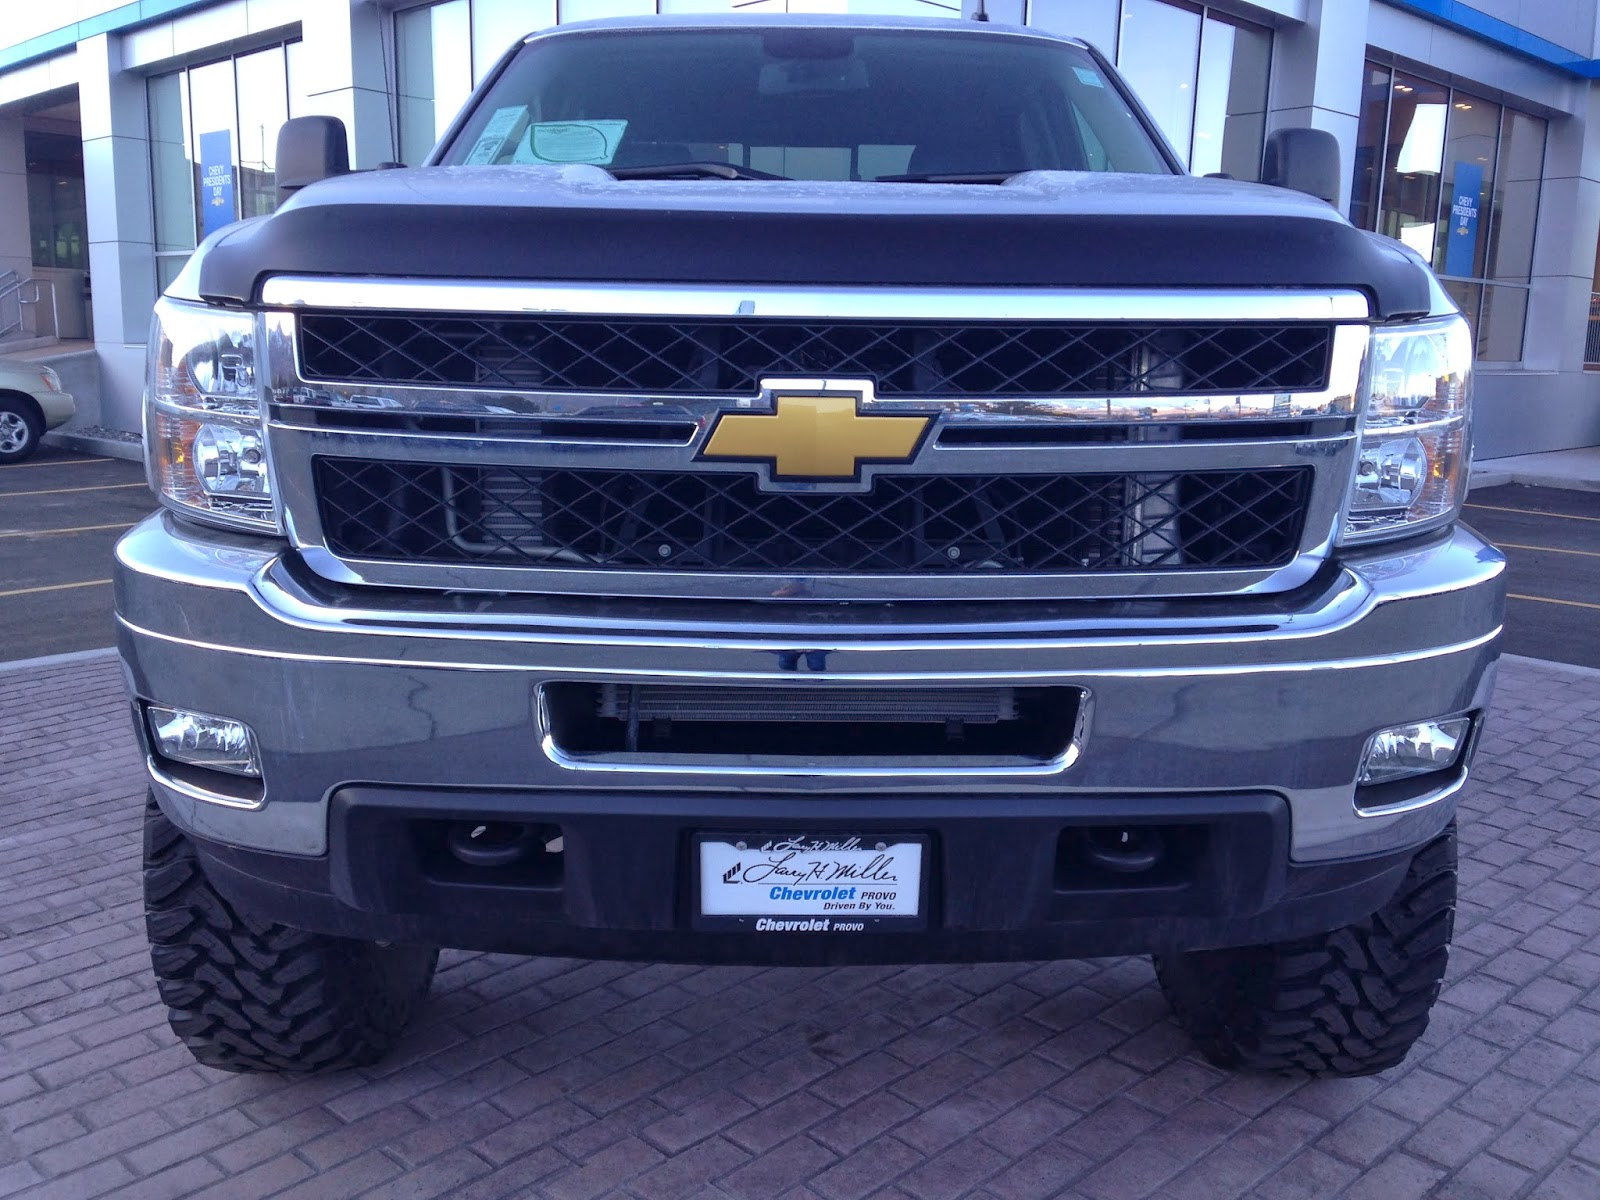 larry h miller chevrolet provo march 2014 larry h miller chevrolet provo march 2014